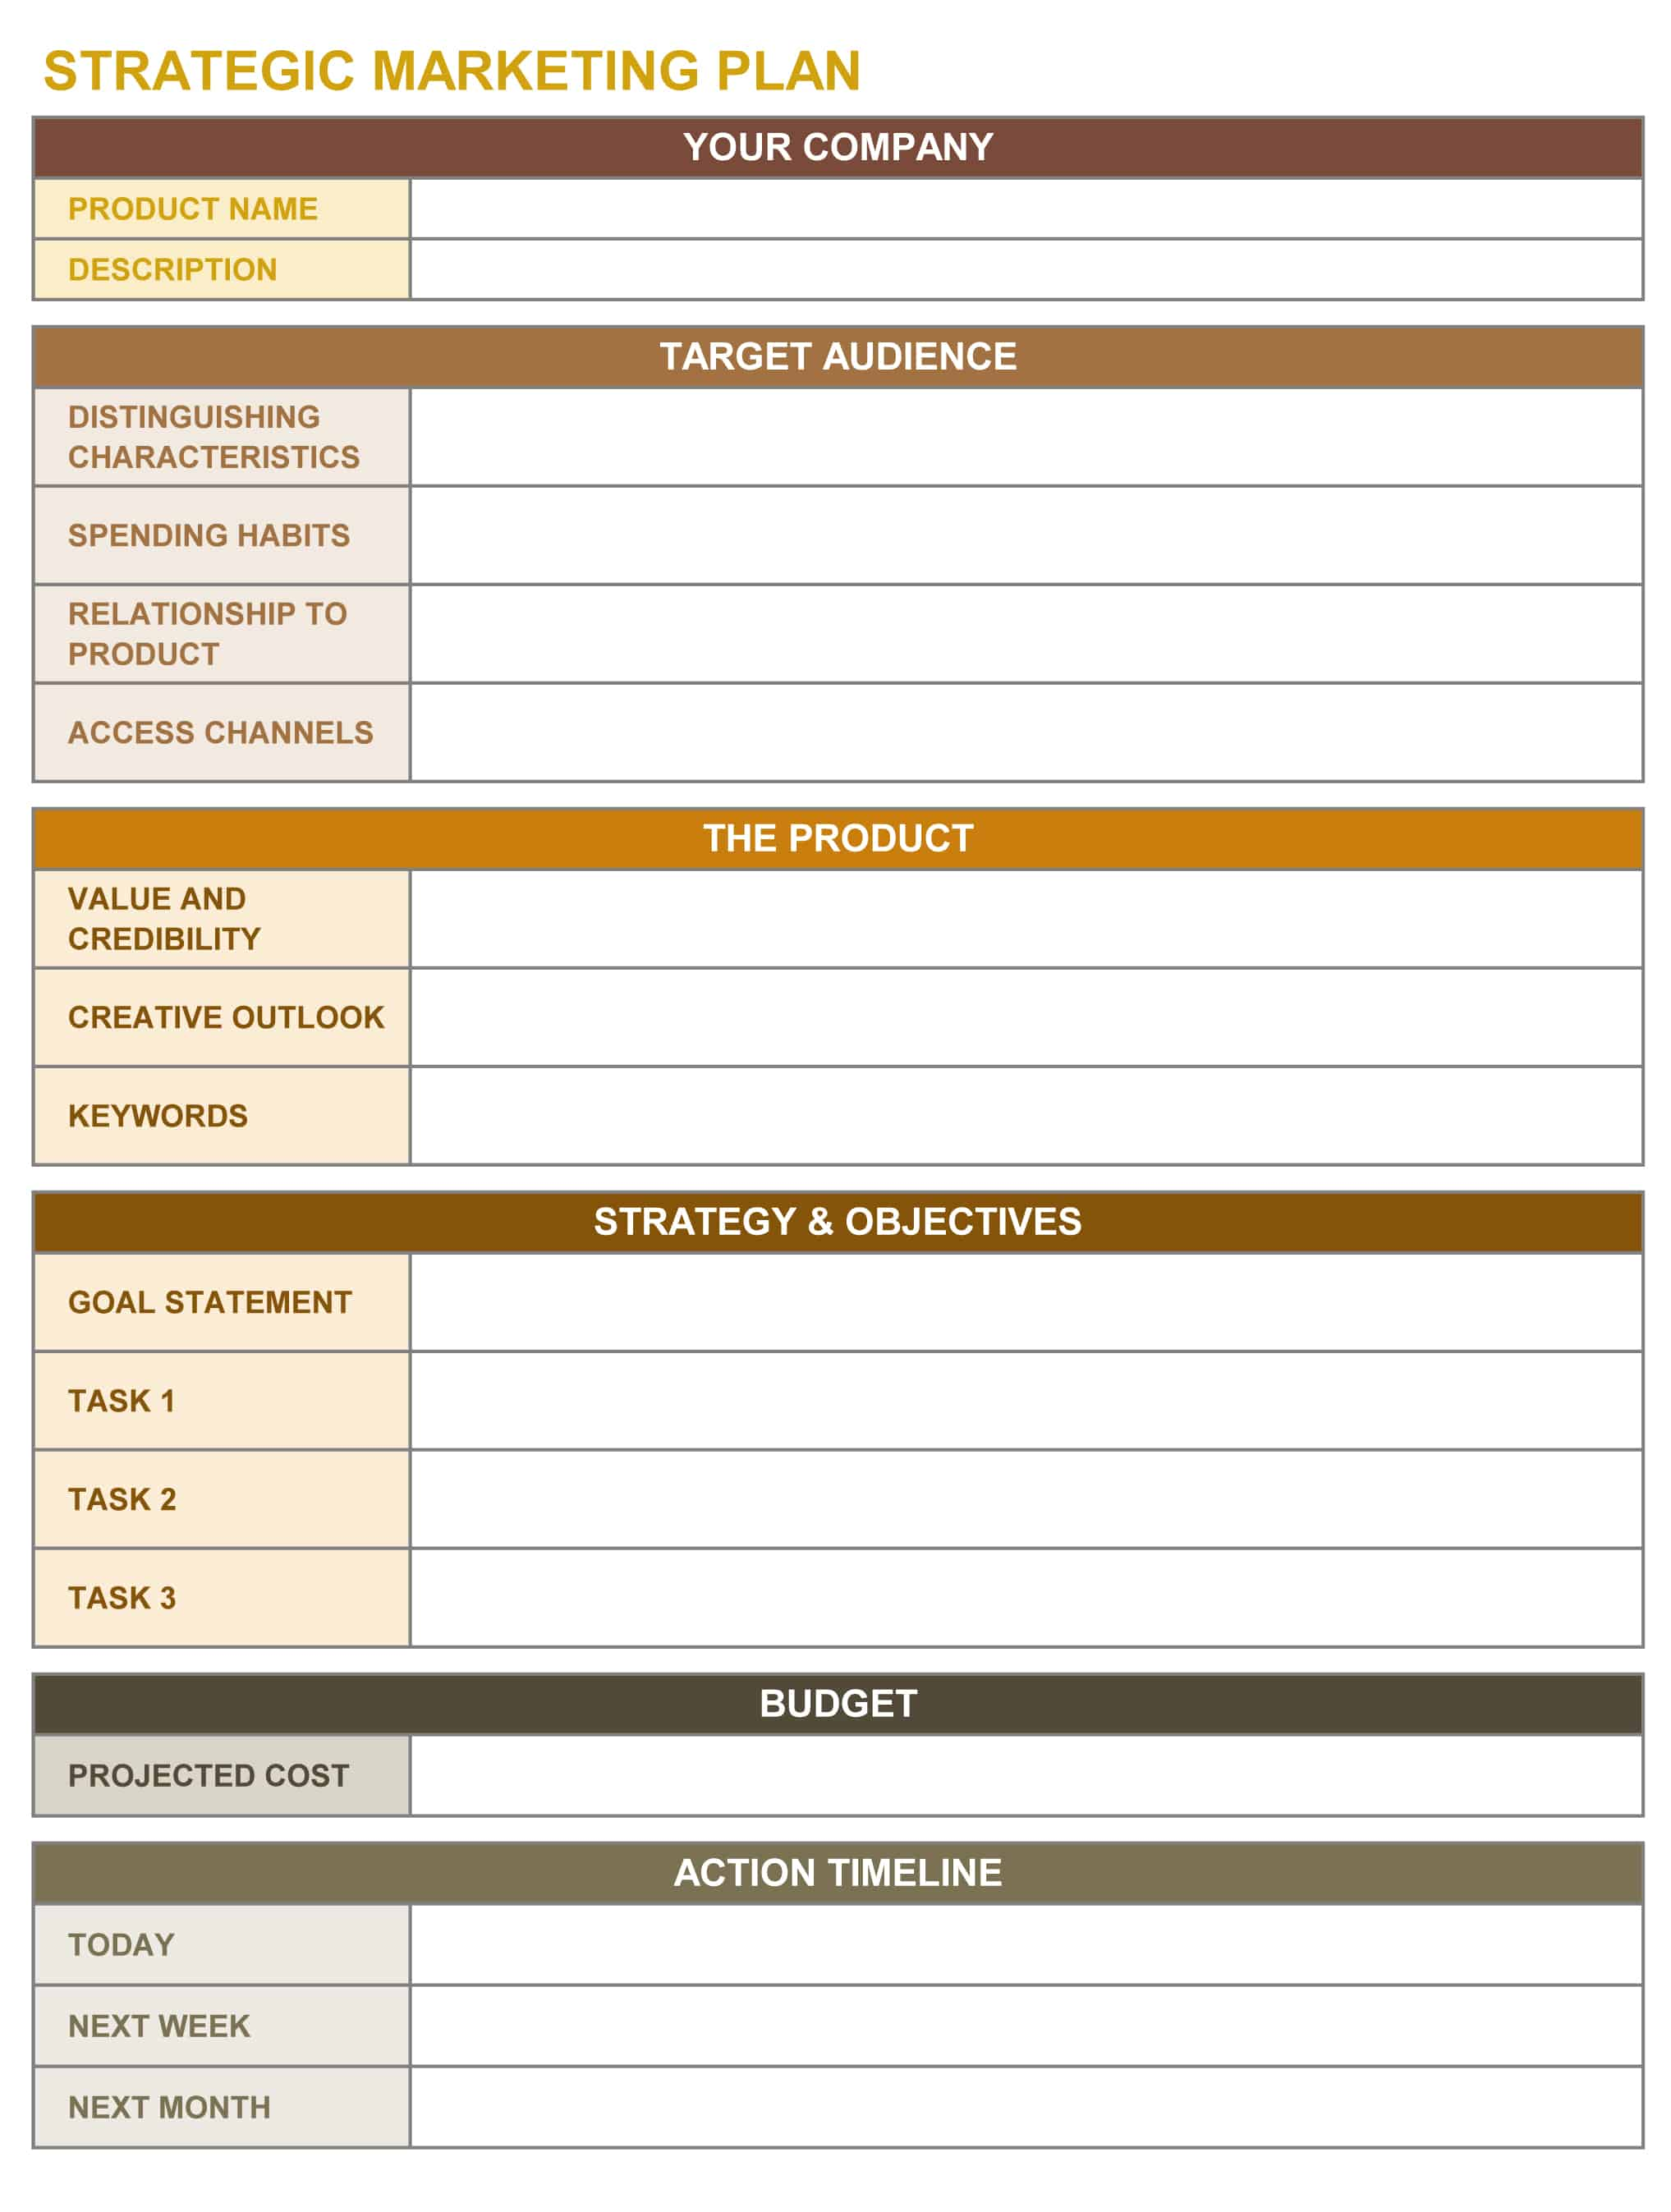 How To Create A Marketing Plan In Excel Best Market - Marketing plan timeline template excel